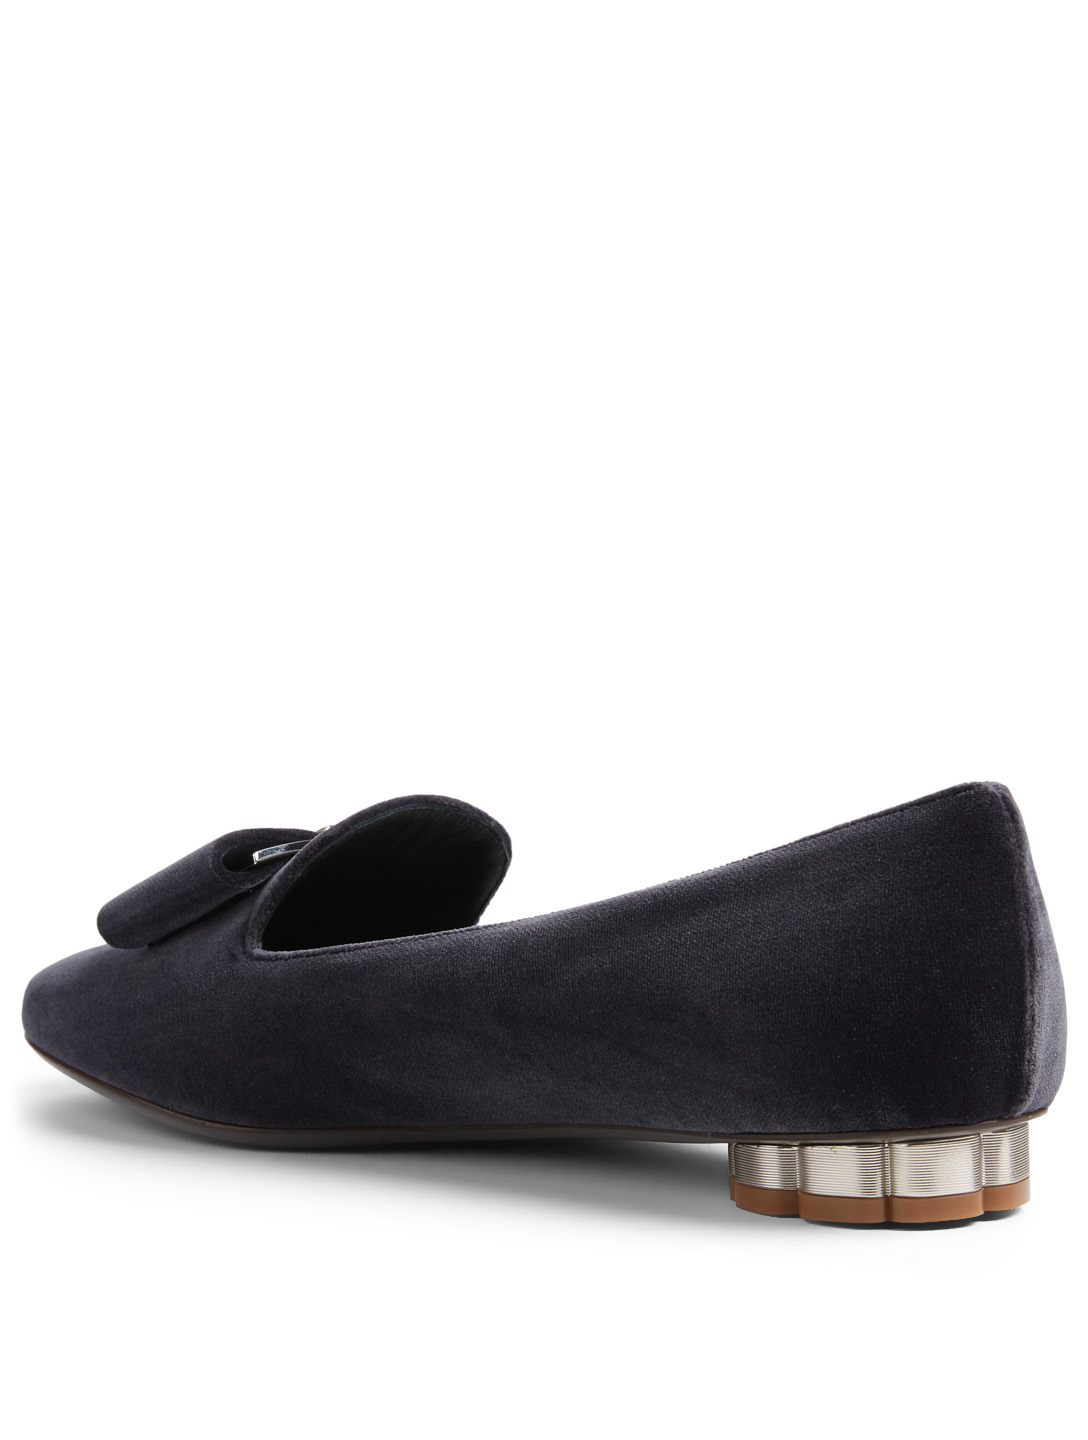 SALVATORE FERRAGAMO Sarno Velvet Flower Heel Slipper Shoes Women's Grey